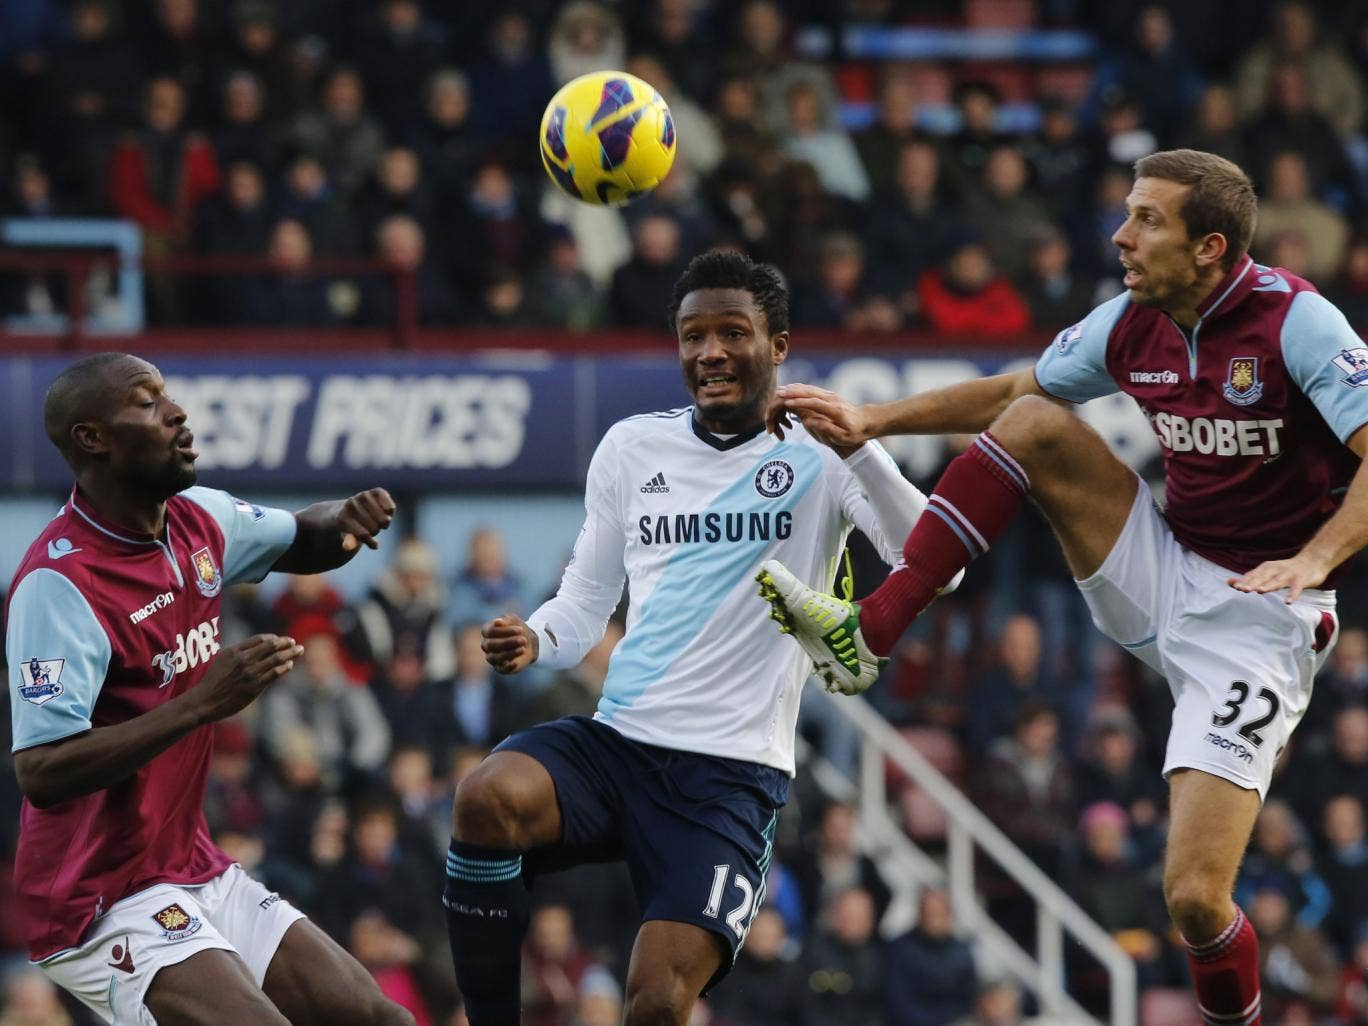 John Obi Mikel of Chelsea (C) vies for the ball with Gary O'Neil (R) and Carlton Cole (L) of West Ham United